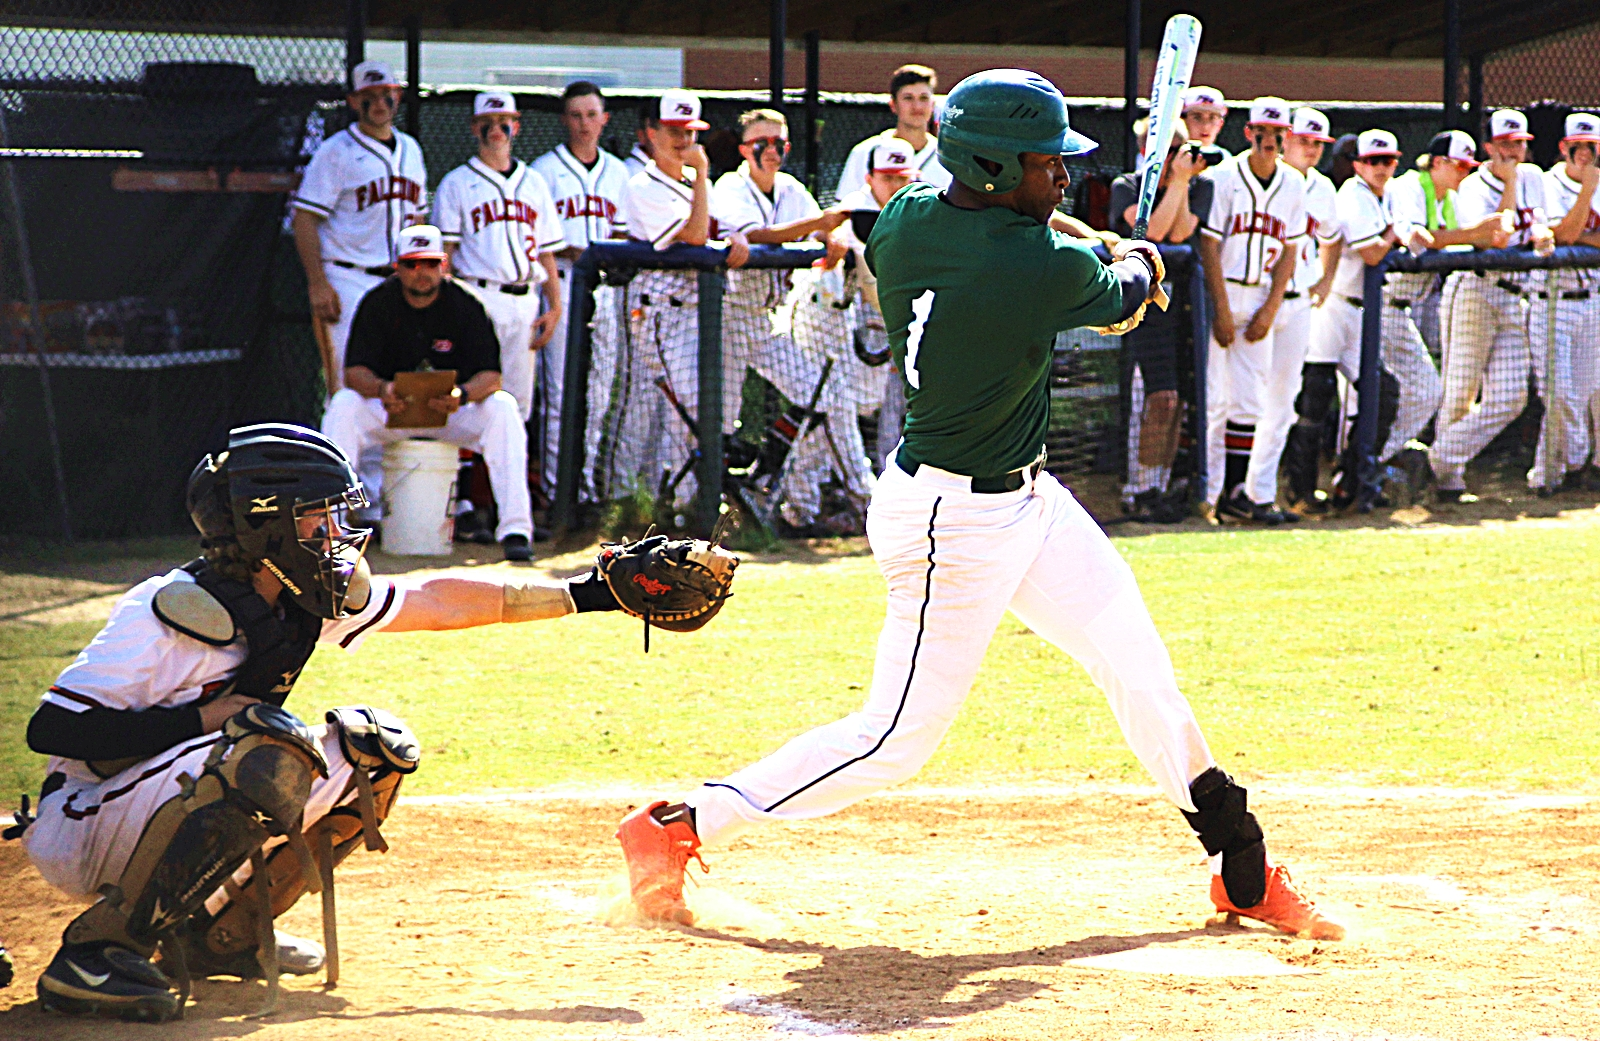 Arabia Mountain's Silas Butler puts the ball in play during Game 3 of the Rams' Class 5A playoff series against Flowery Branch.